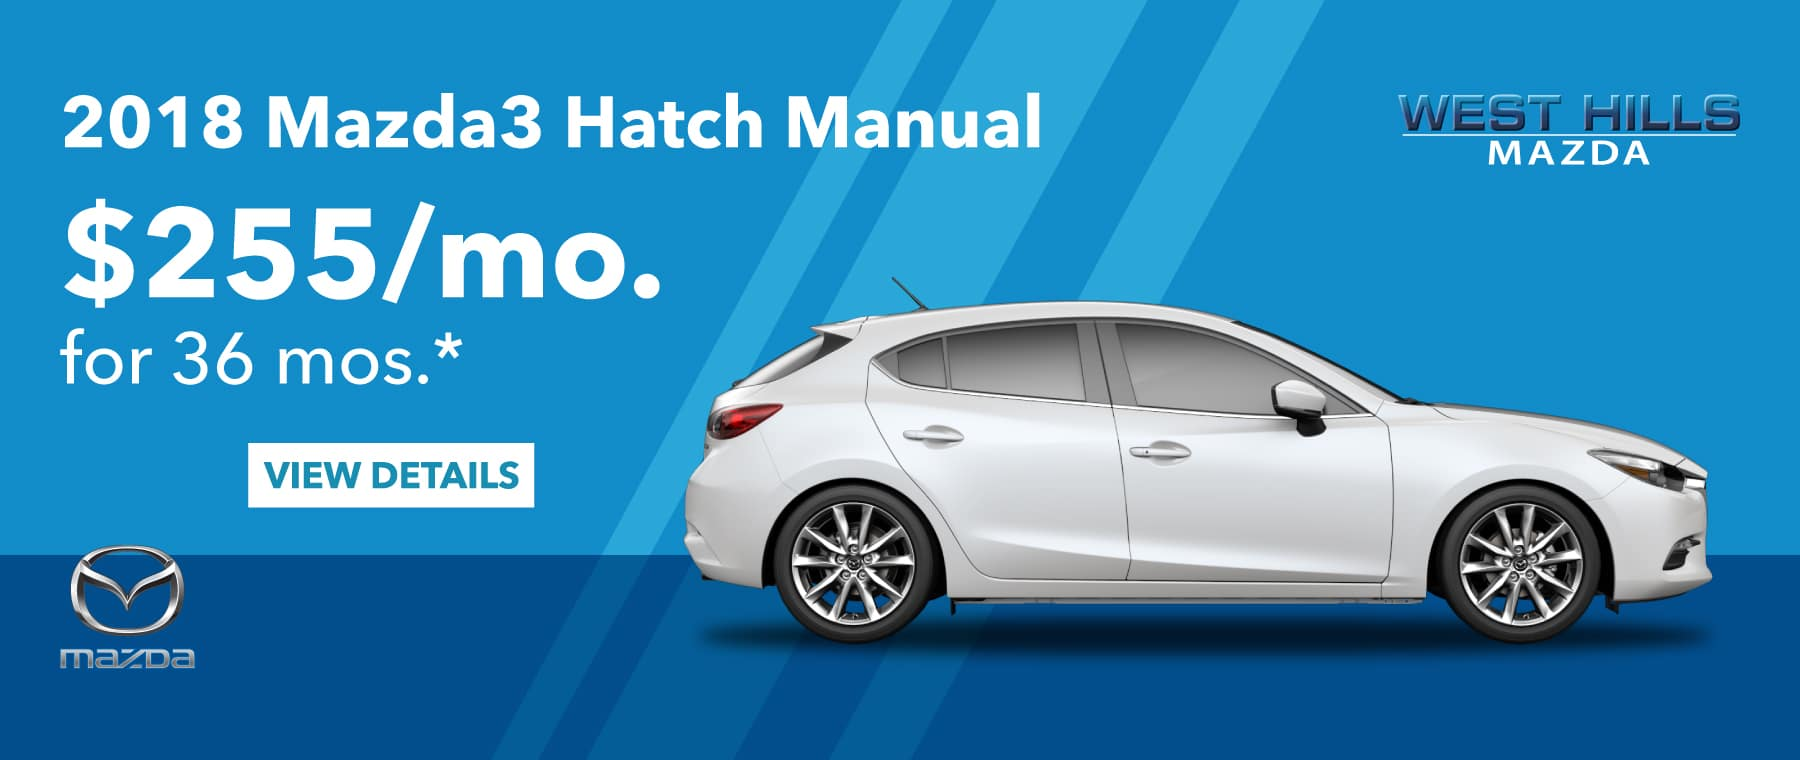 2018 Mazda3 Hatch Manual $255/mo. For 36 mos.*